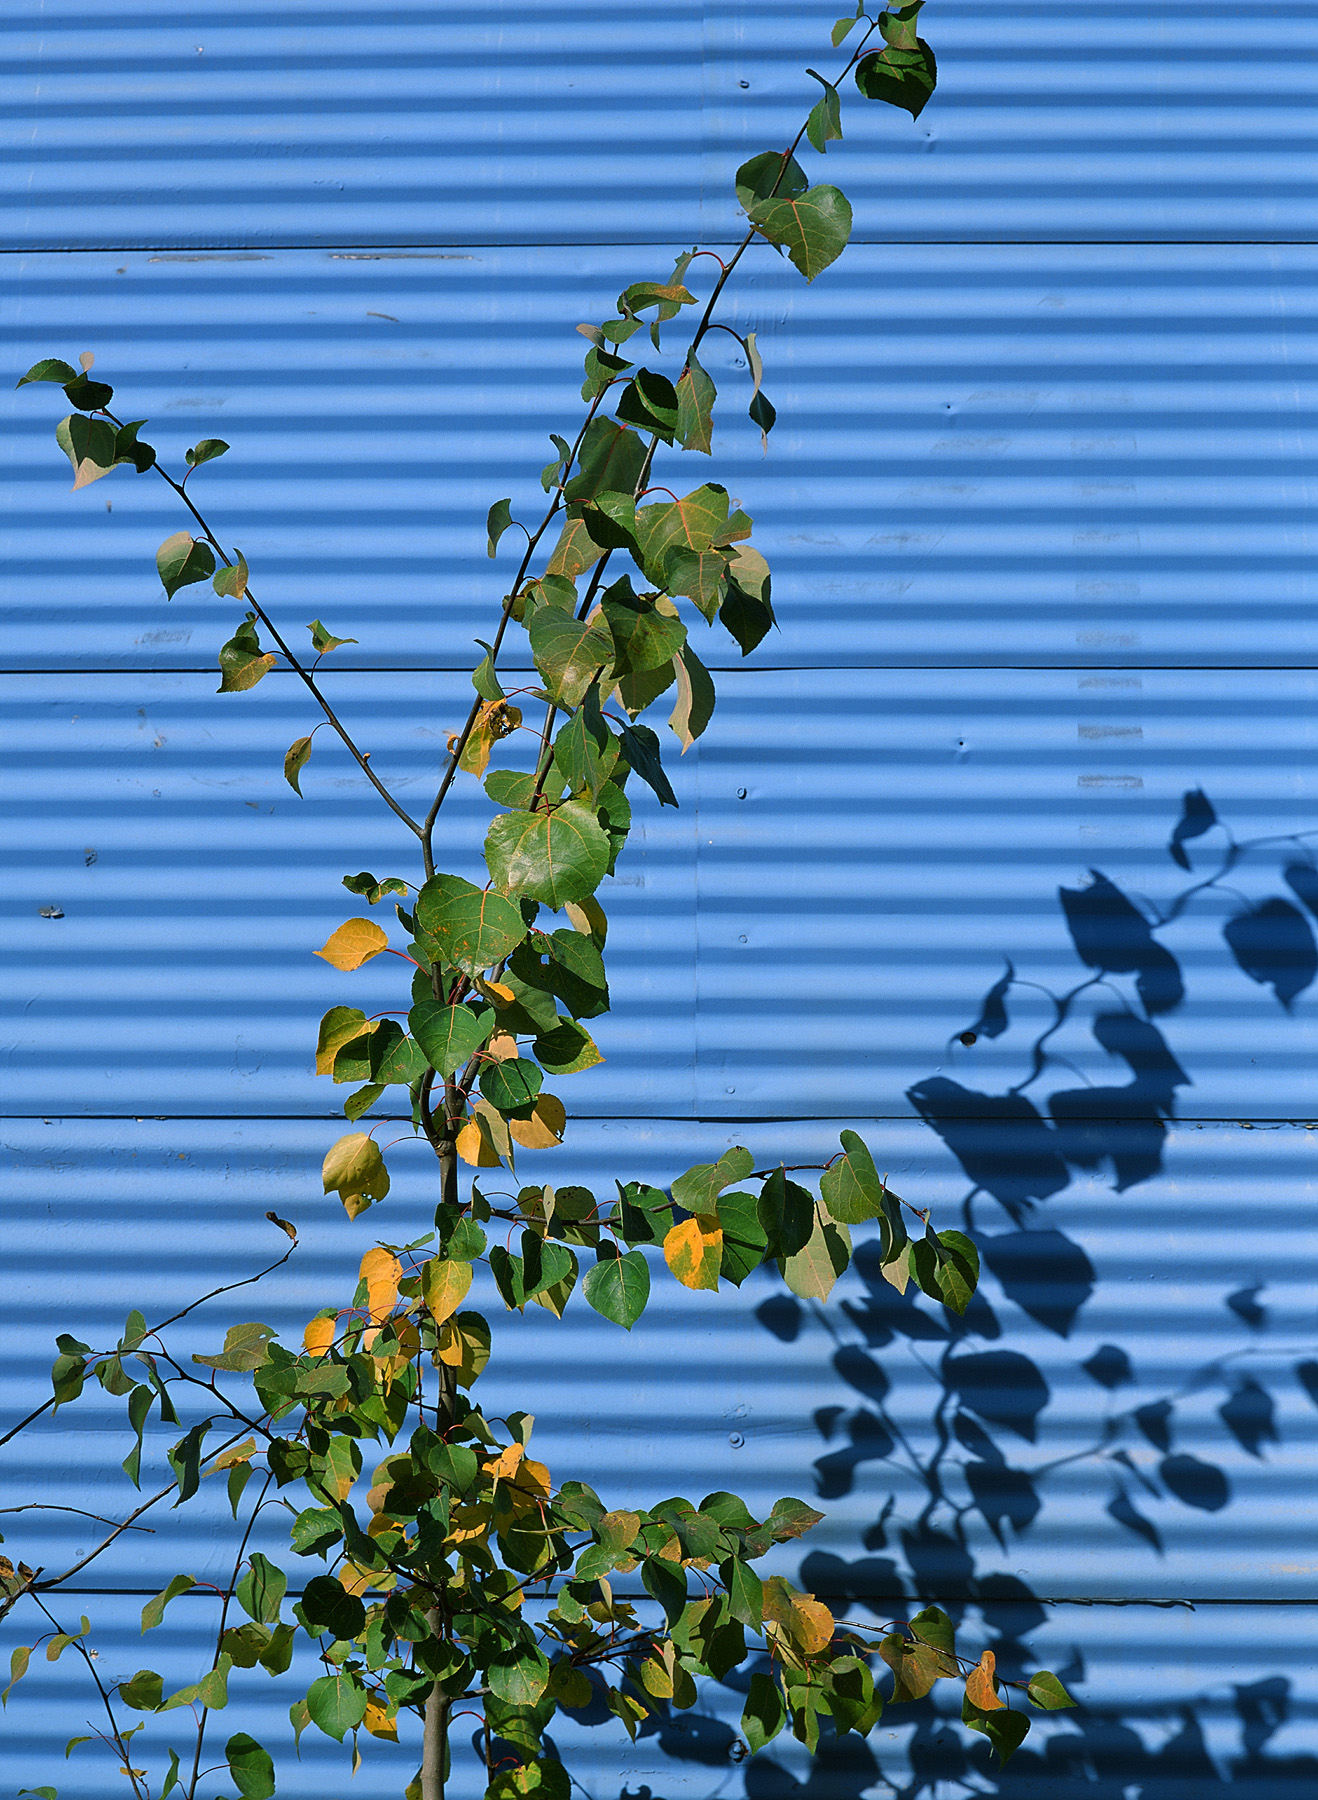 Green Branches, Blue Building by bensonga in bensonga